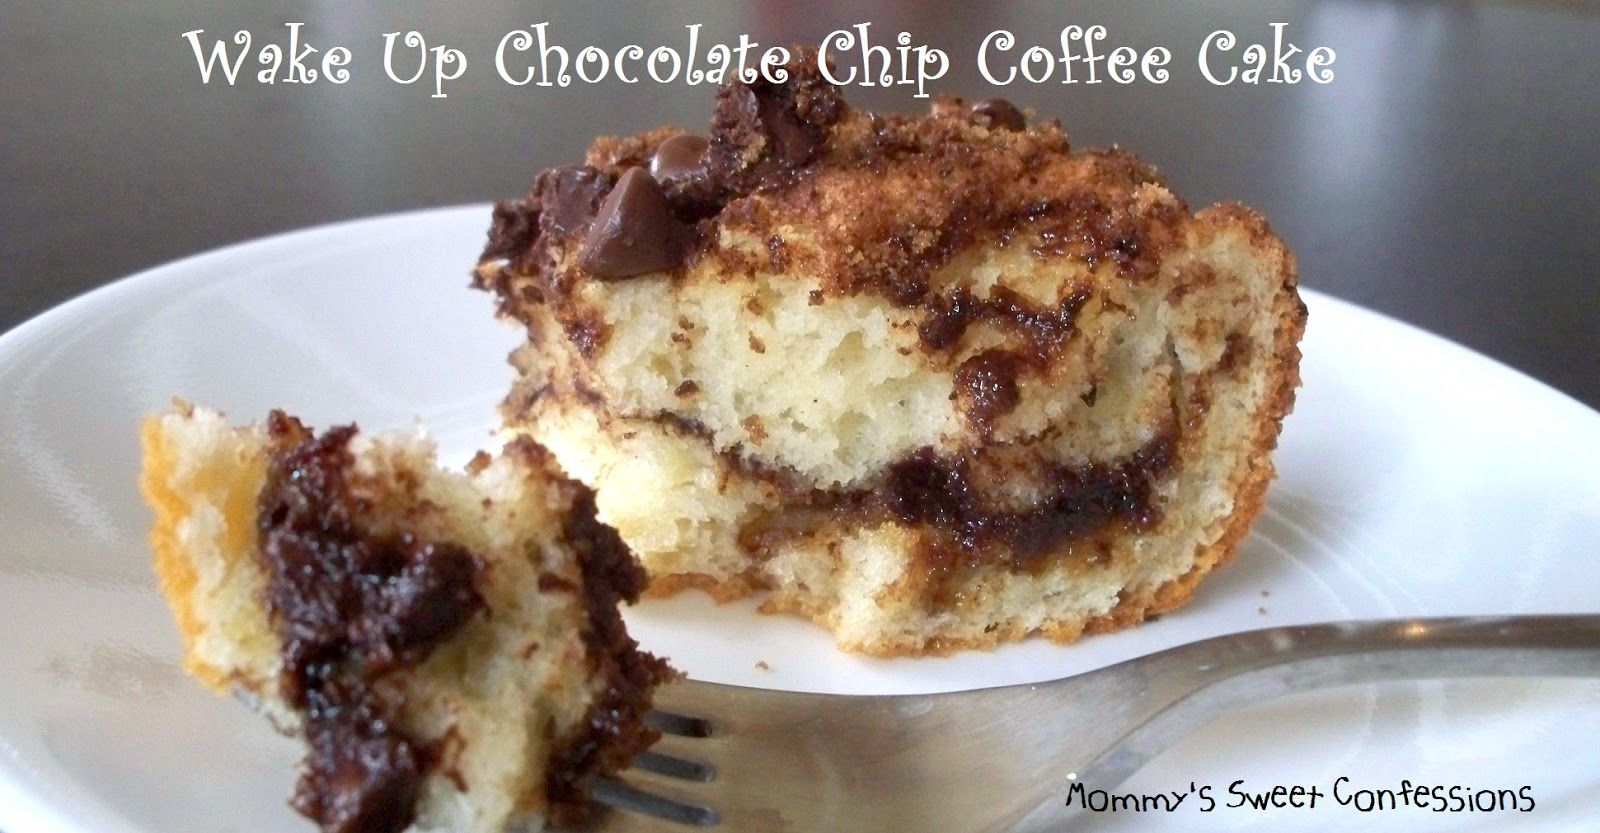 MOMMY'S SWEET CONFESSIONS: Sunday's Sweet Confessions Link Party #12 with a side of Wake Up Chocolate Chip Coffee Cake!